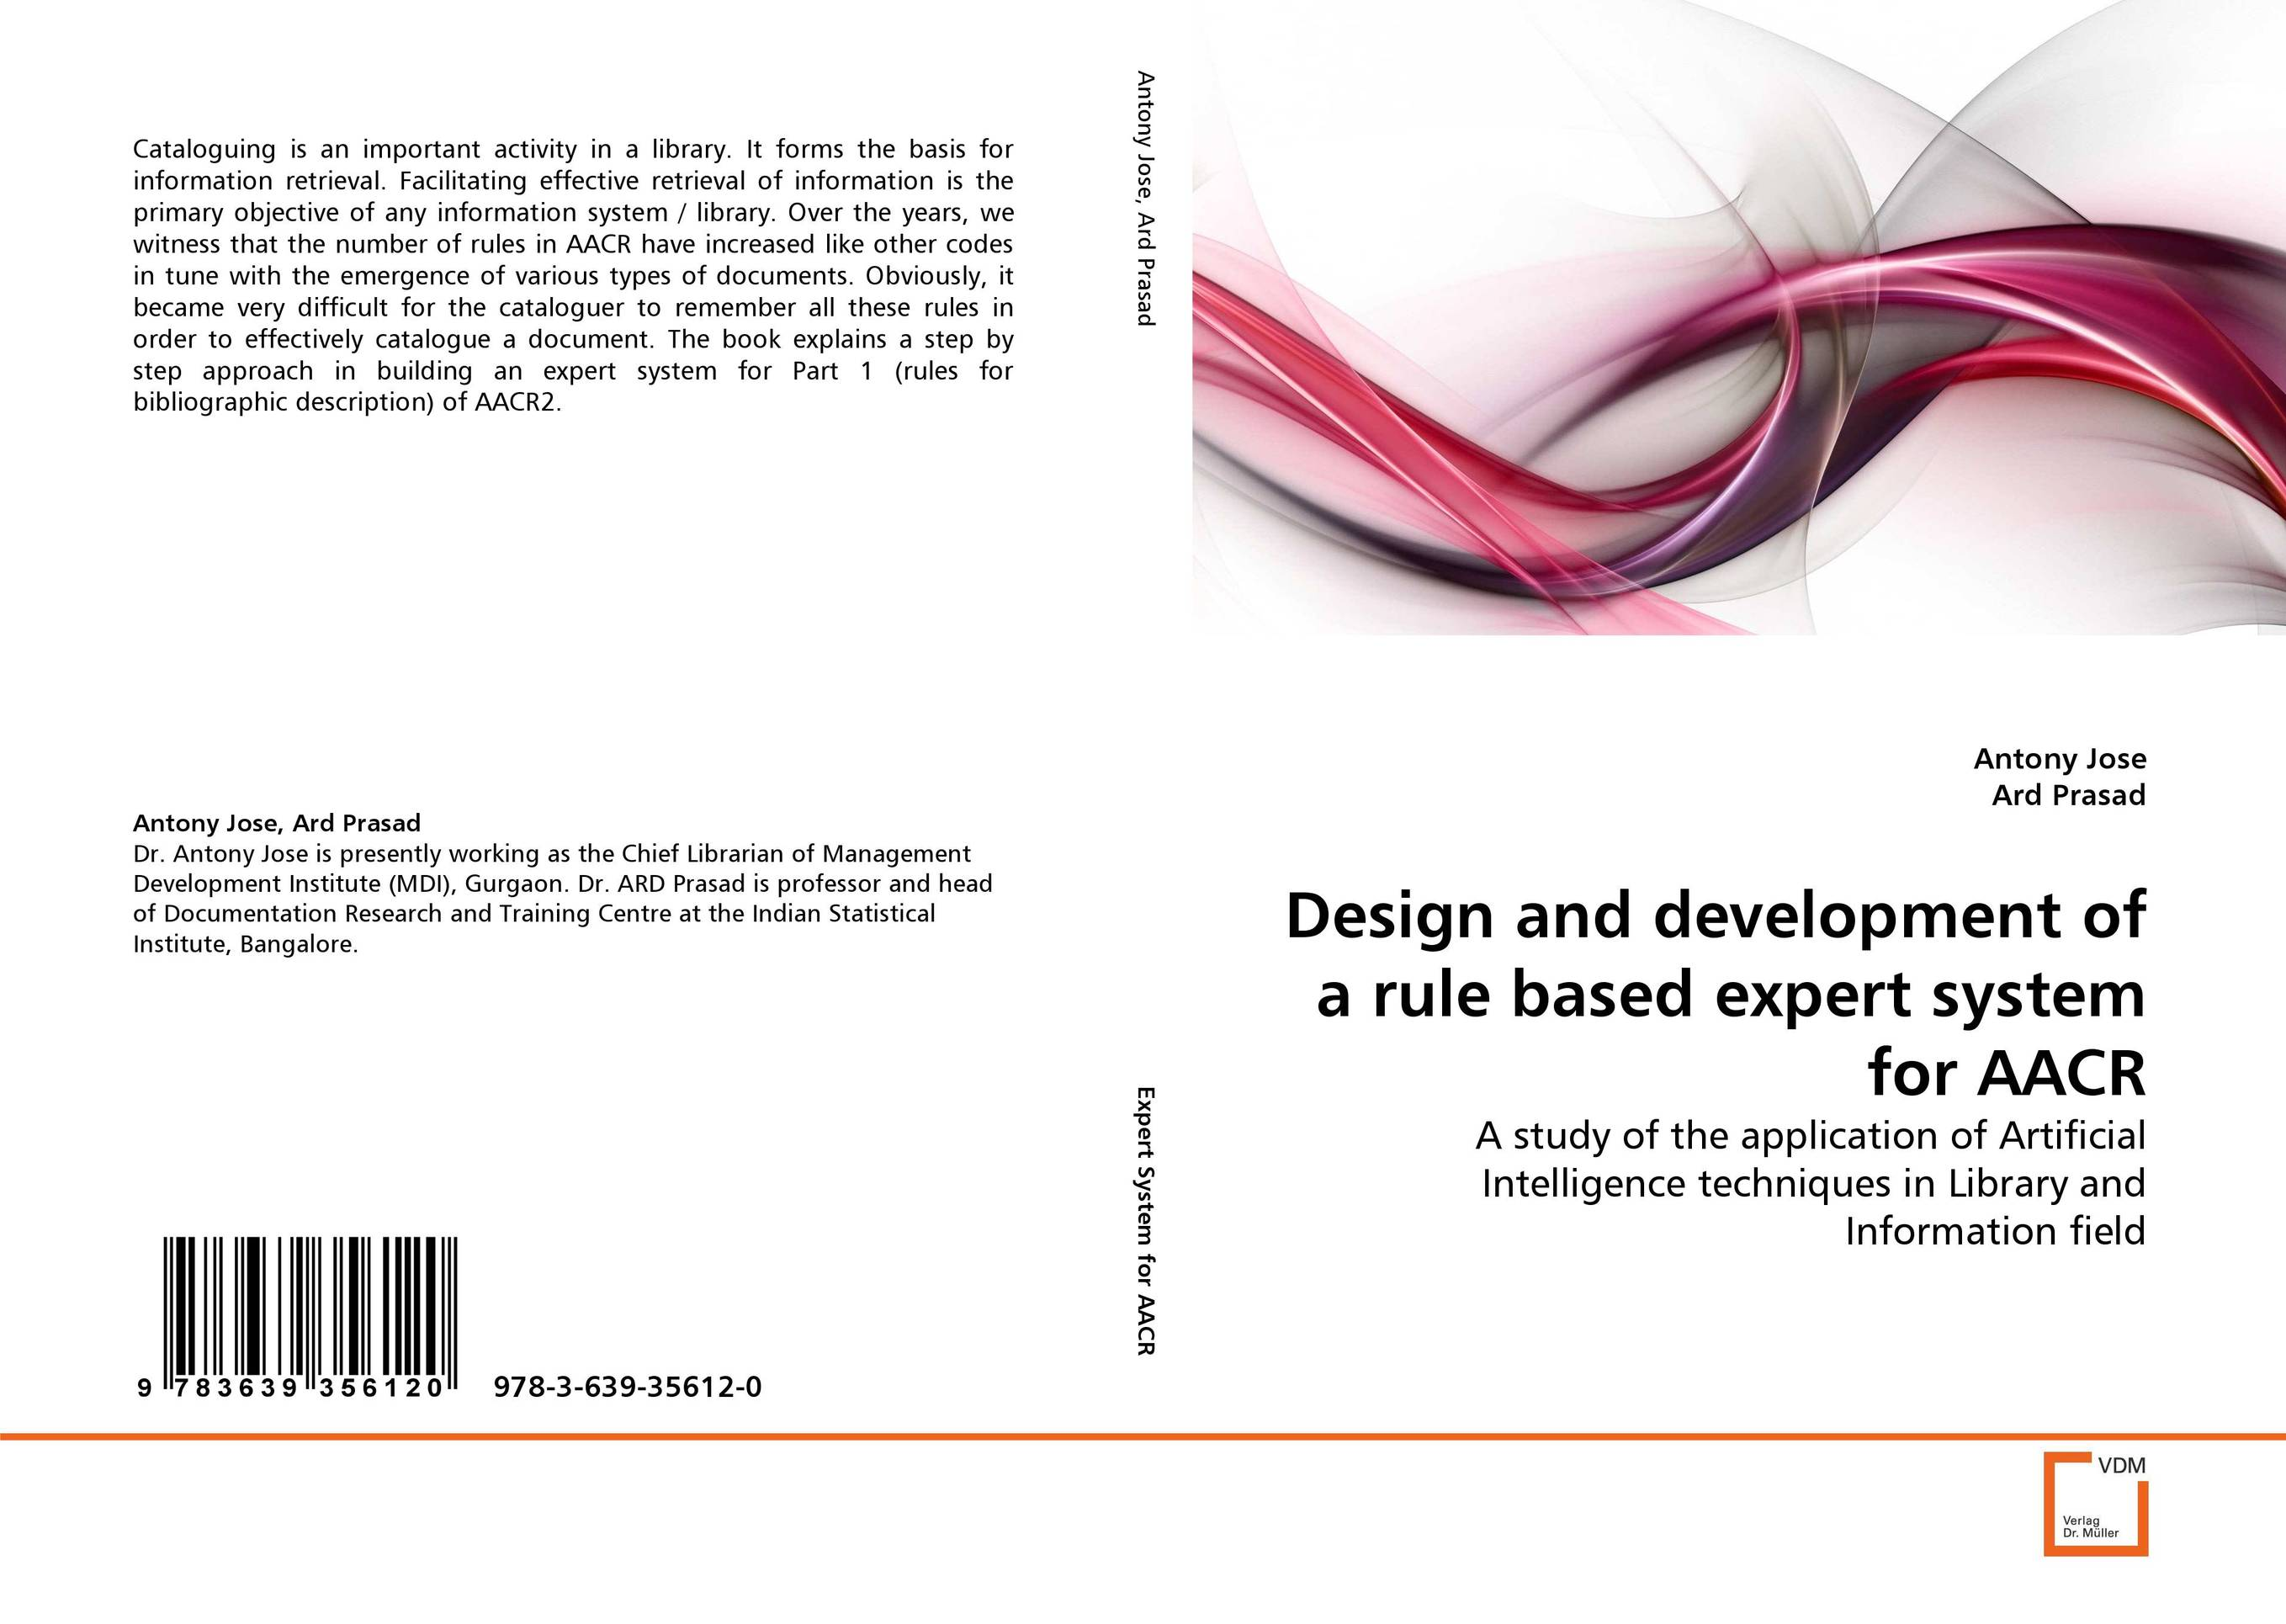 Design and development of a rule based expert system for AACR a decision support tool for library book inventory management